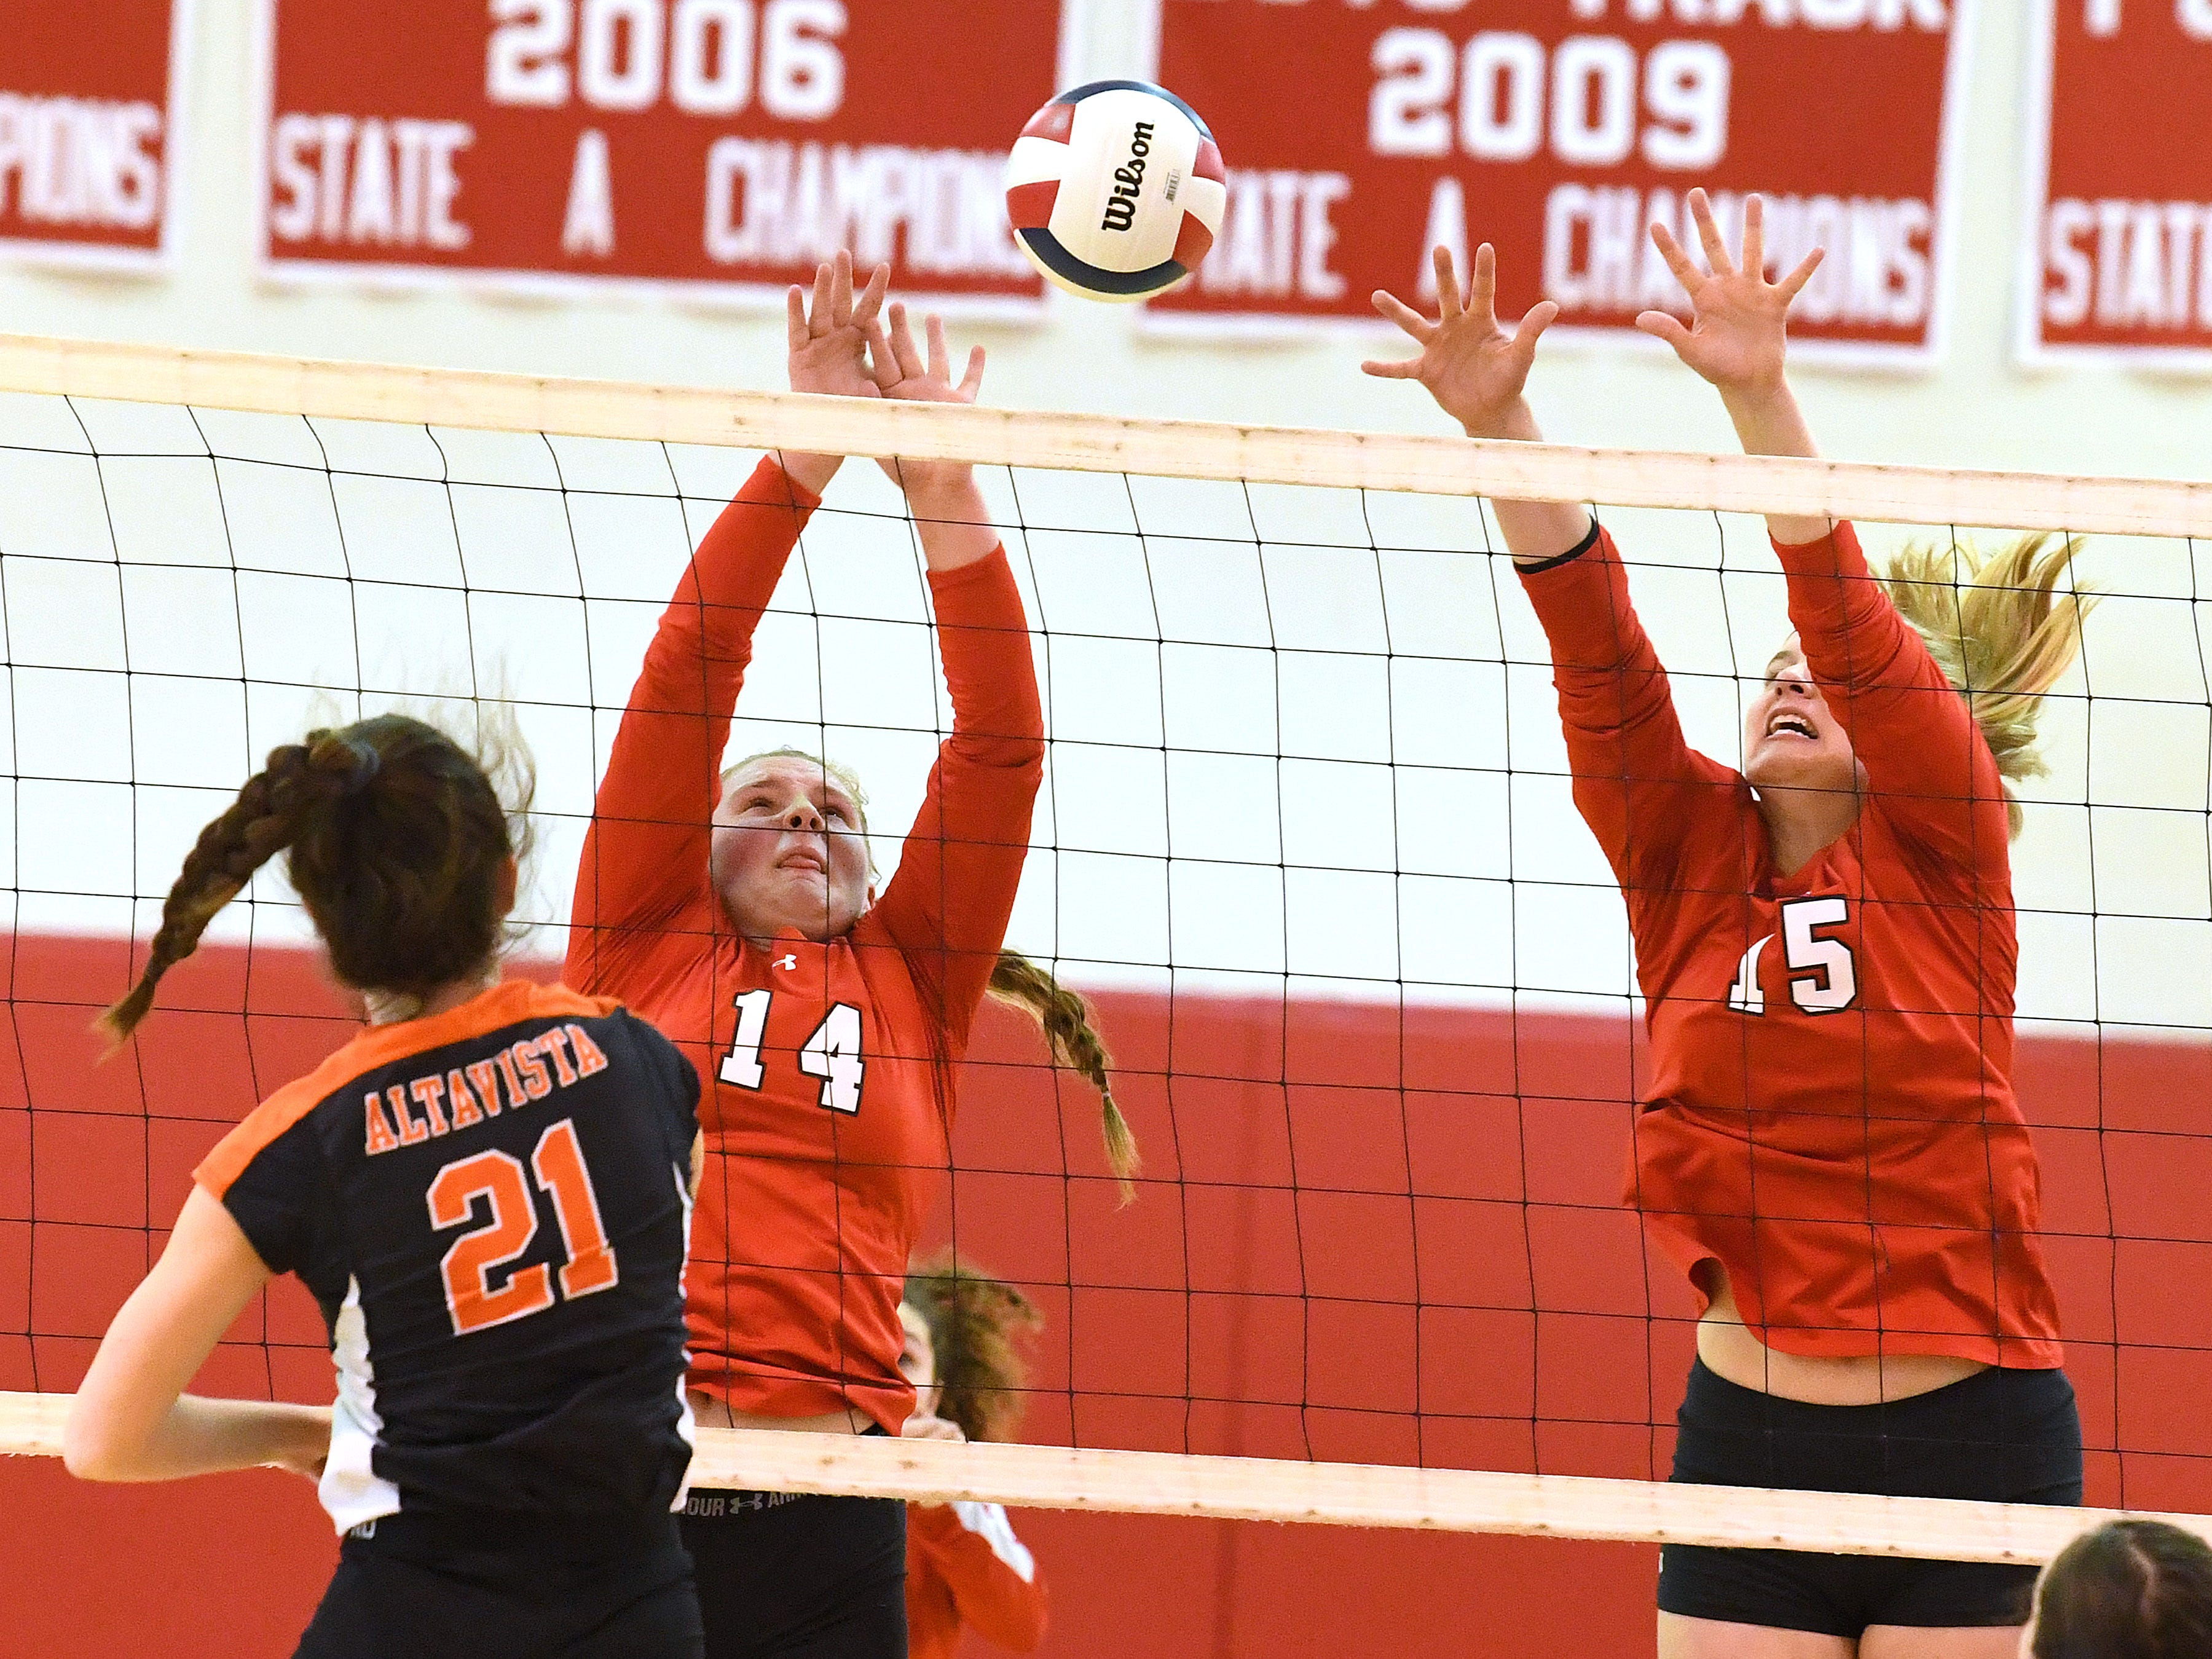 Riverheads' Dayton Moore and Eva Frederick block a return by Altavista's Madeline Tweedy at the net during the Region 1B volleyball championship played in Greenville on Wednesday, Nov. 7, 2018.